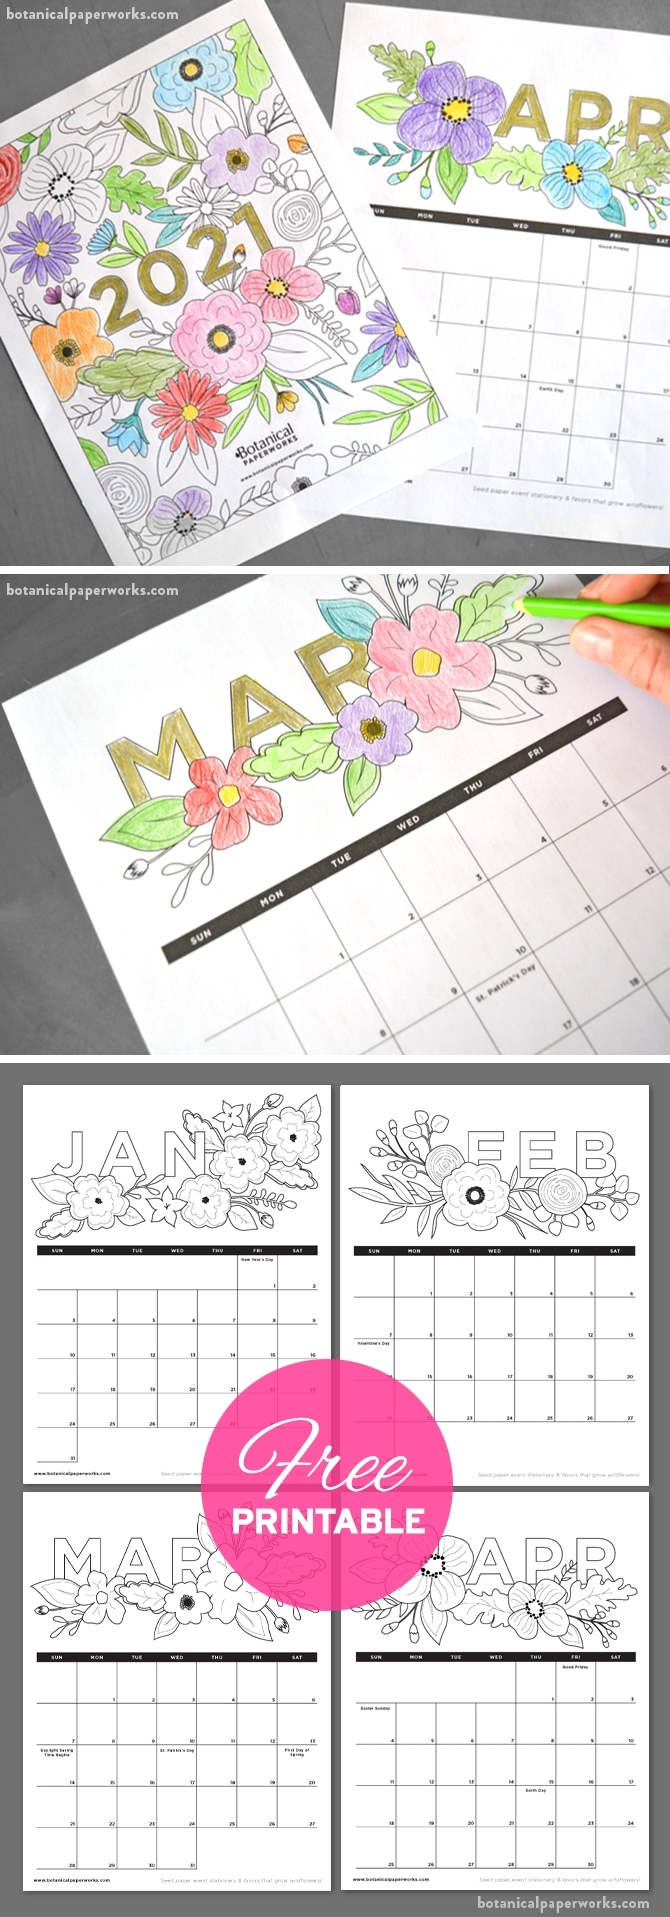 Free Printable 2021 Calendars | Botanical Paperworks